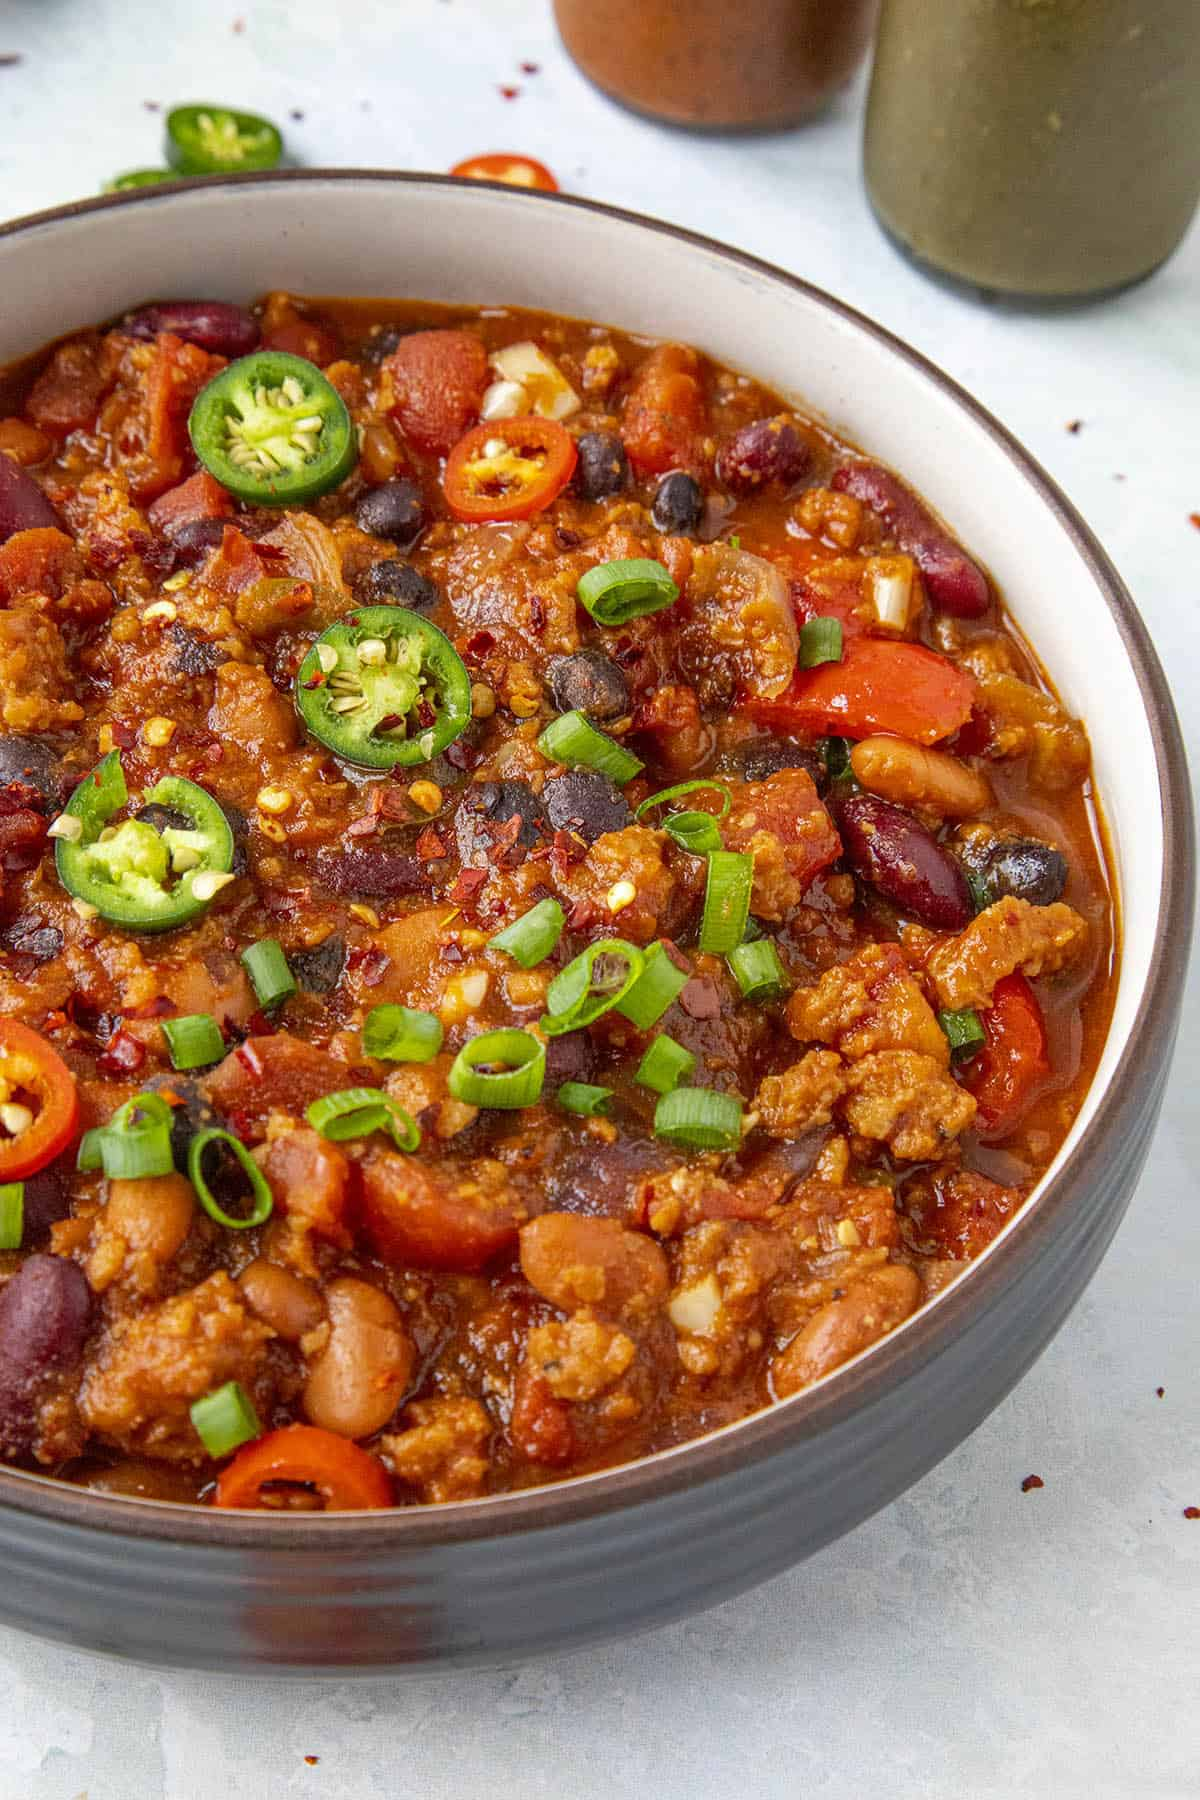 Chunky Vegetarian Chili in a bowl with garnish